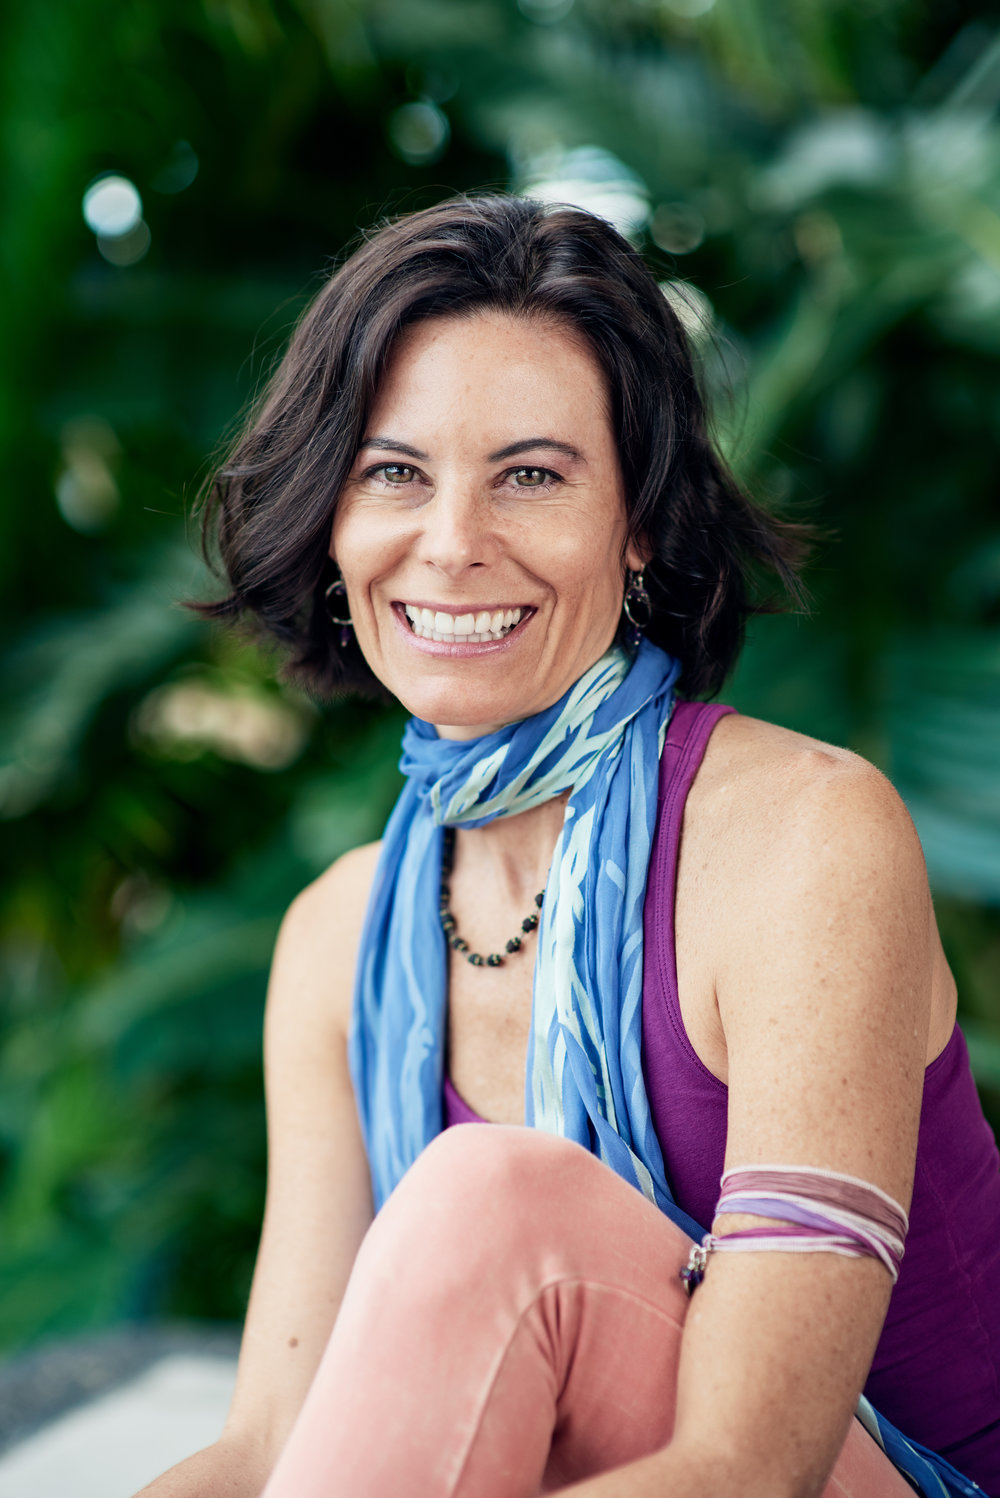 "Jennifer Reuter - Jennifer discovered yoga in 1998, after receiving her first copy of the Bhagavad Gita, and has been passionately inquiring yogic philosophy ever since. She studies extensively with many different teachers finding great value in exploring every style yoga has to offer. For 10 years she formally studied deep tantric meditation and was initiated as an ""acharya"" and authorized teacher of Neelakantha Meditation by Blue Throat Yoga. She's also a level 2 certified Irest yoga nidra teacher. Jennifer has been leading teacher trainings and advanced yogic studies since 2009. You will find her classes, lectures and retreats ""interdisciplinary"" inviting both ancient and modern day tools. Her teachings are intelligent, pragmatic and always heartfelt. Jennifer is the founder of Yoga Unplugged, a platform that brings teachers and healers together to host events and trainings. She believes that collaborating enables her to offer a wider variety of philosophies, teaching styles and healing modalities to her students and envisions a day when Yoga Unplugged is a brand that doesn't just belong to one person, but to many people spread across the world with the same core purpose."